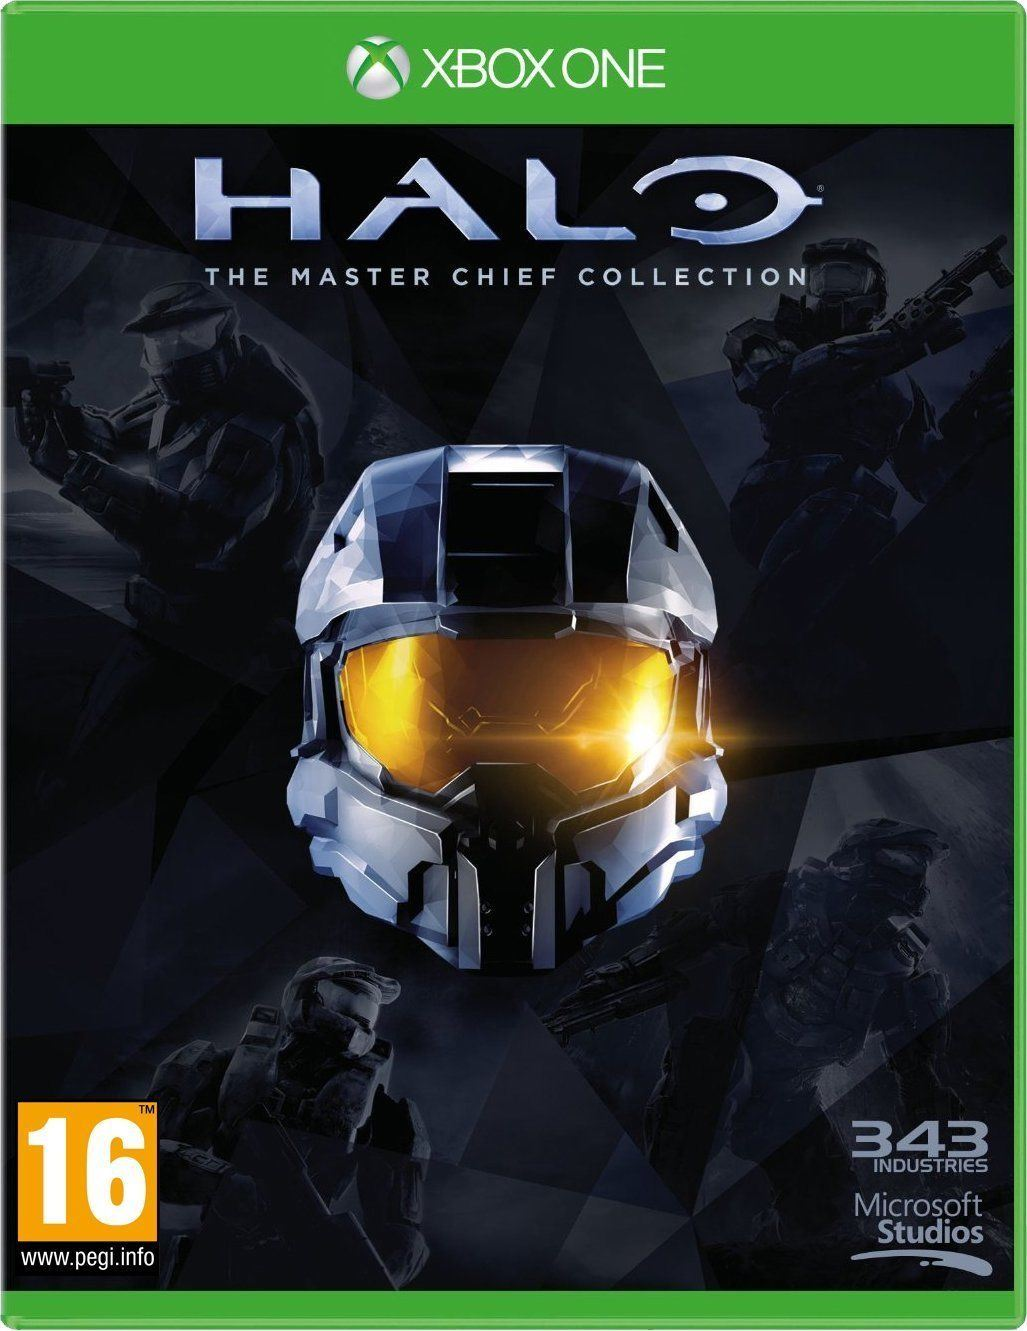 HALO - THE MASTER CHIEF COLLECTION - 4 Games in 1